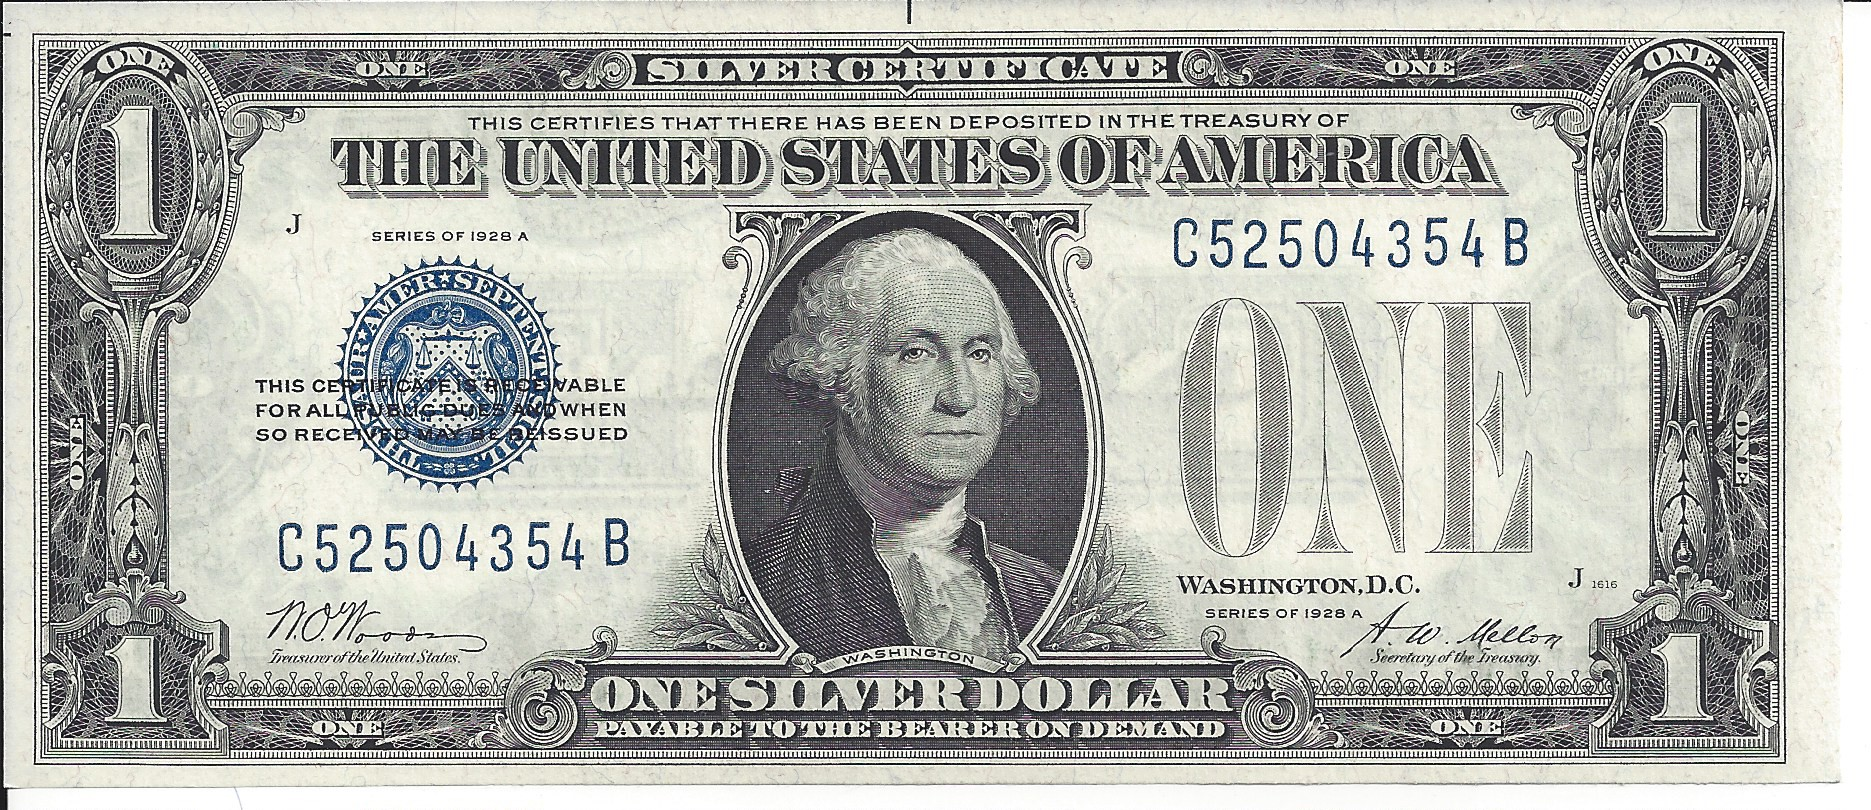 1928 silver series certificate certificates mellon 1601 uncirculated woods choice fr funny